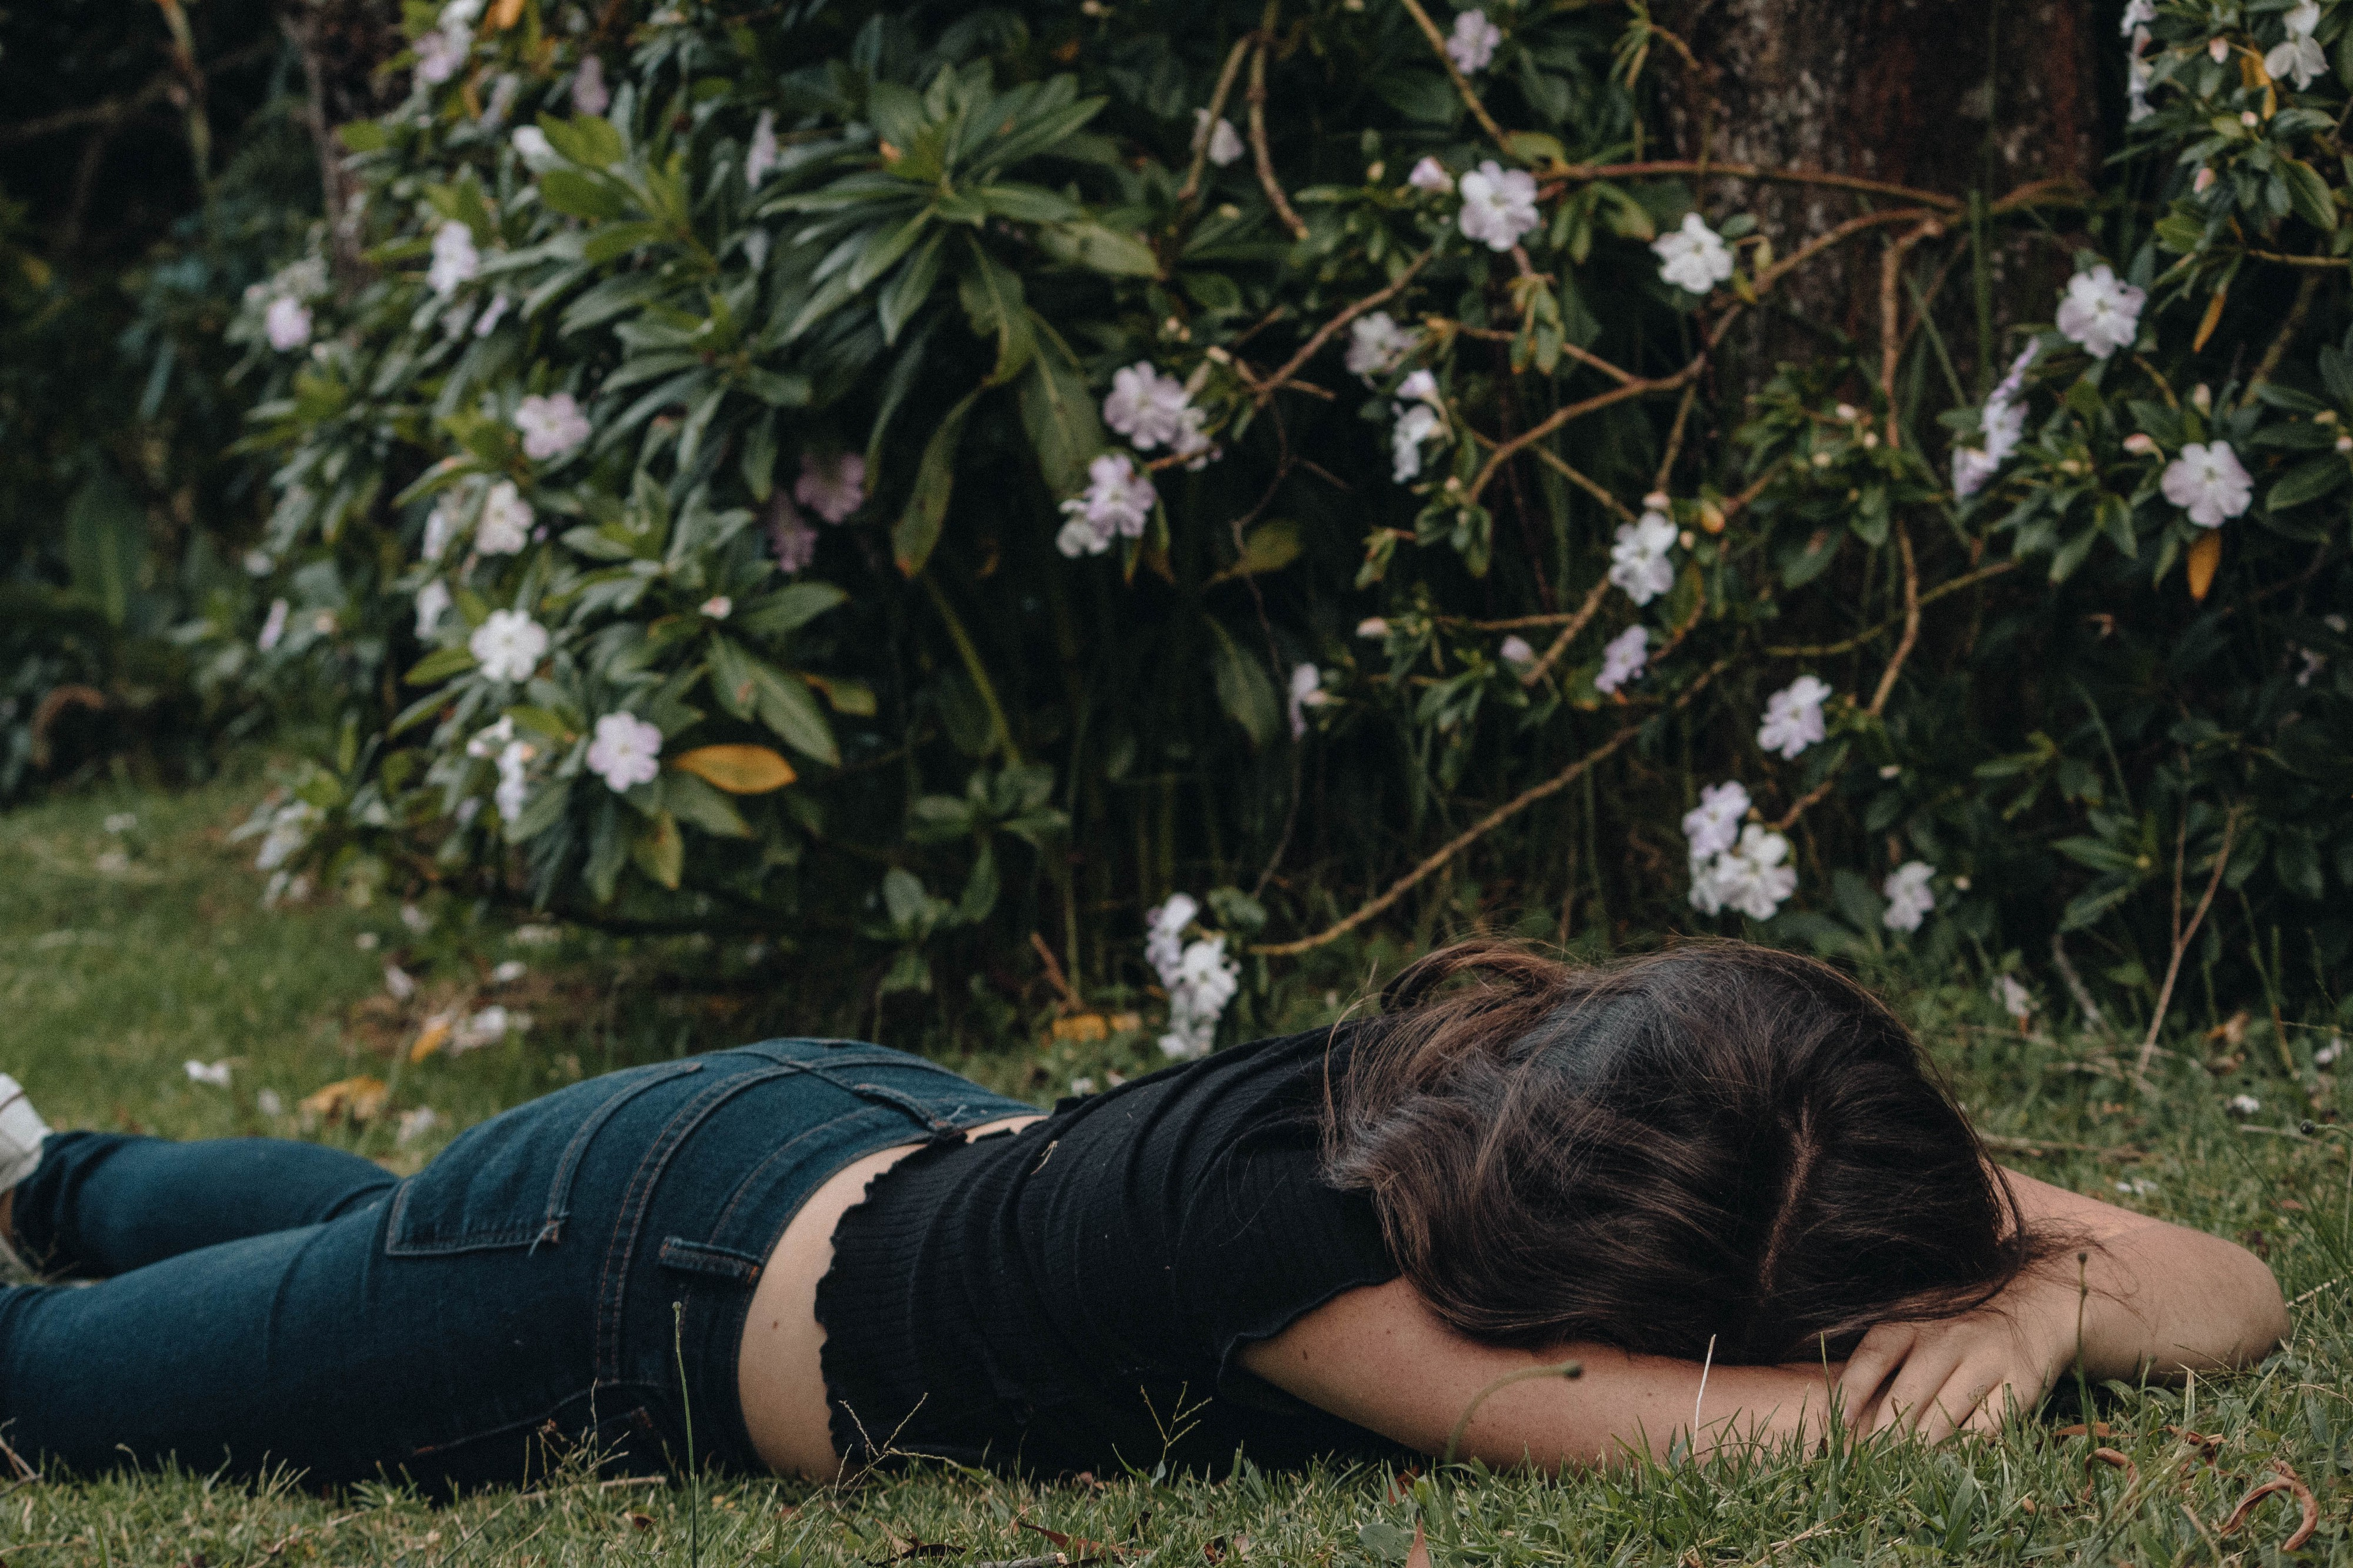 A woman wearing jeans and a black top lies face down in grass. A bush with flowers are behind her.